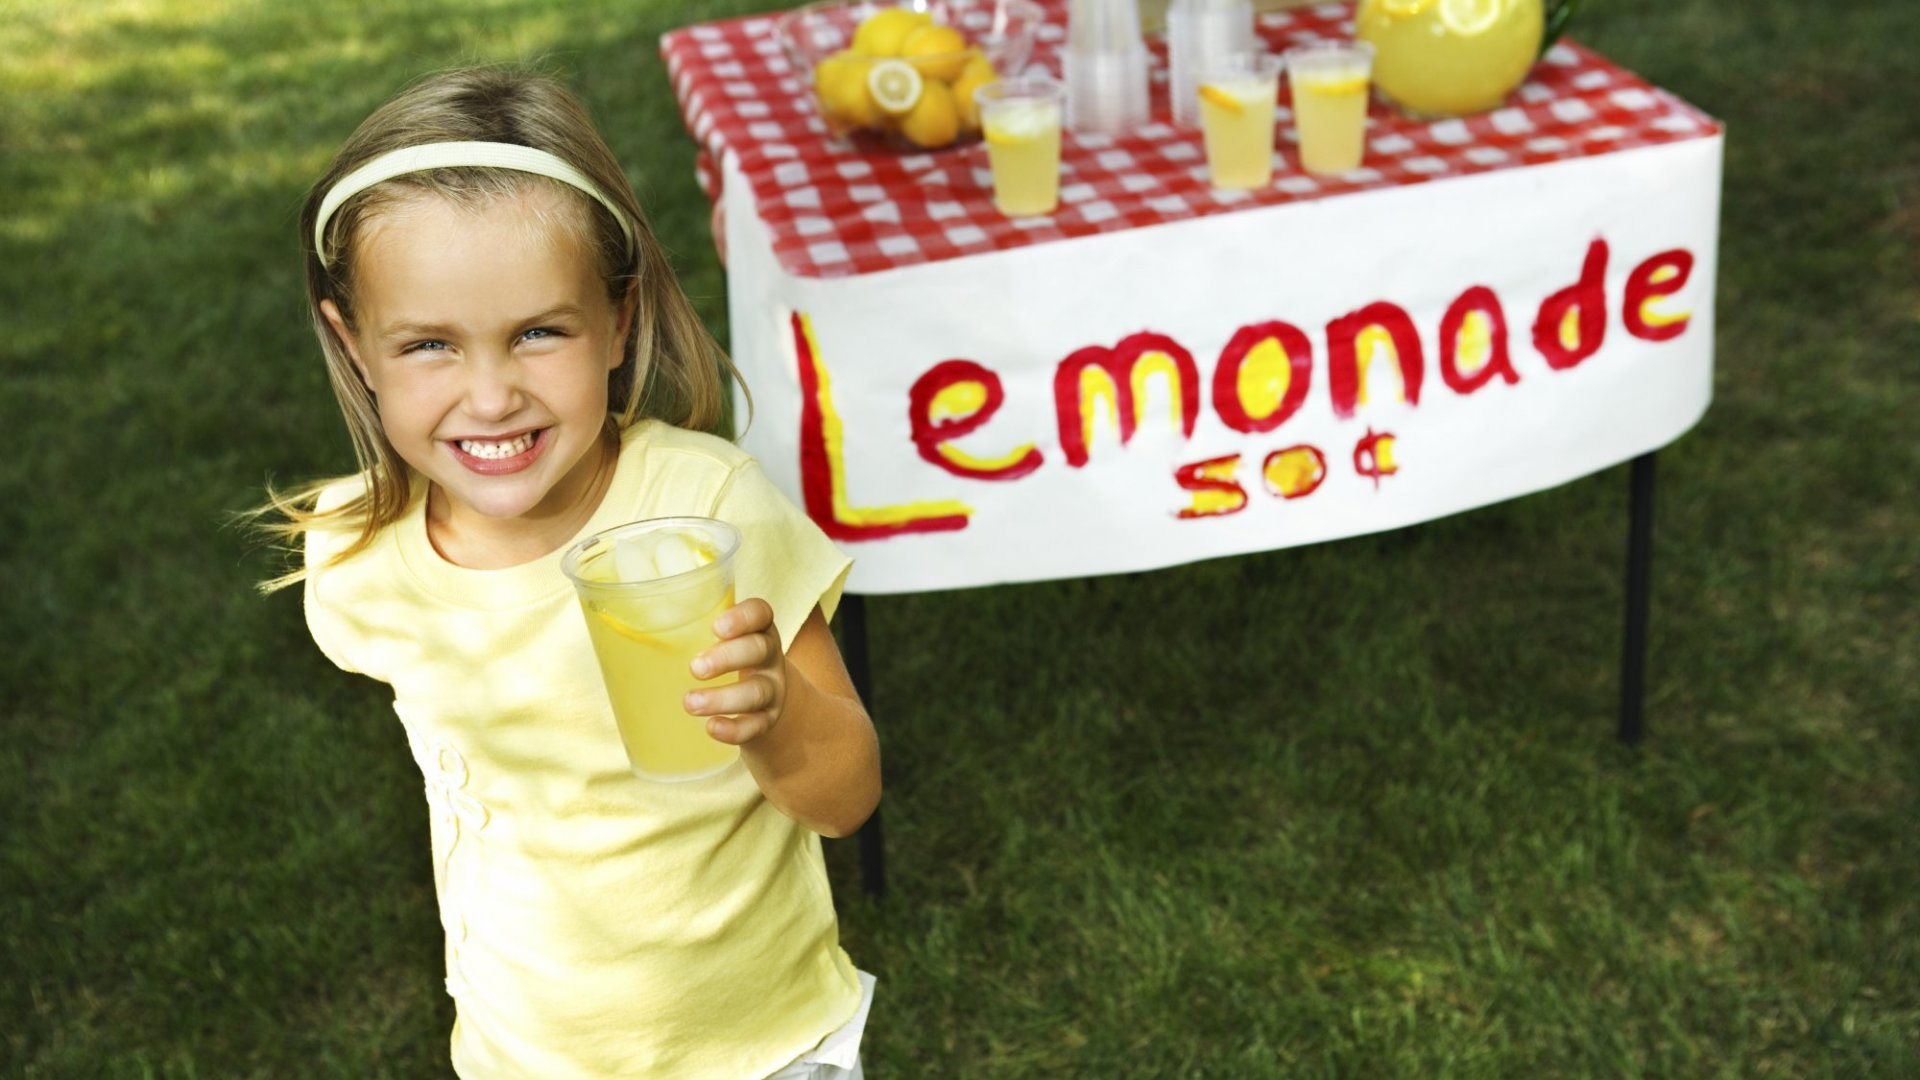 3 Success Secrets Youthful Lemonade Magnates Know That You May Have Forgotten